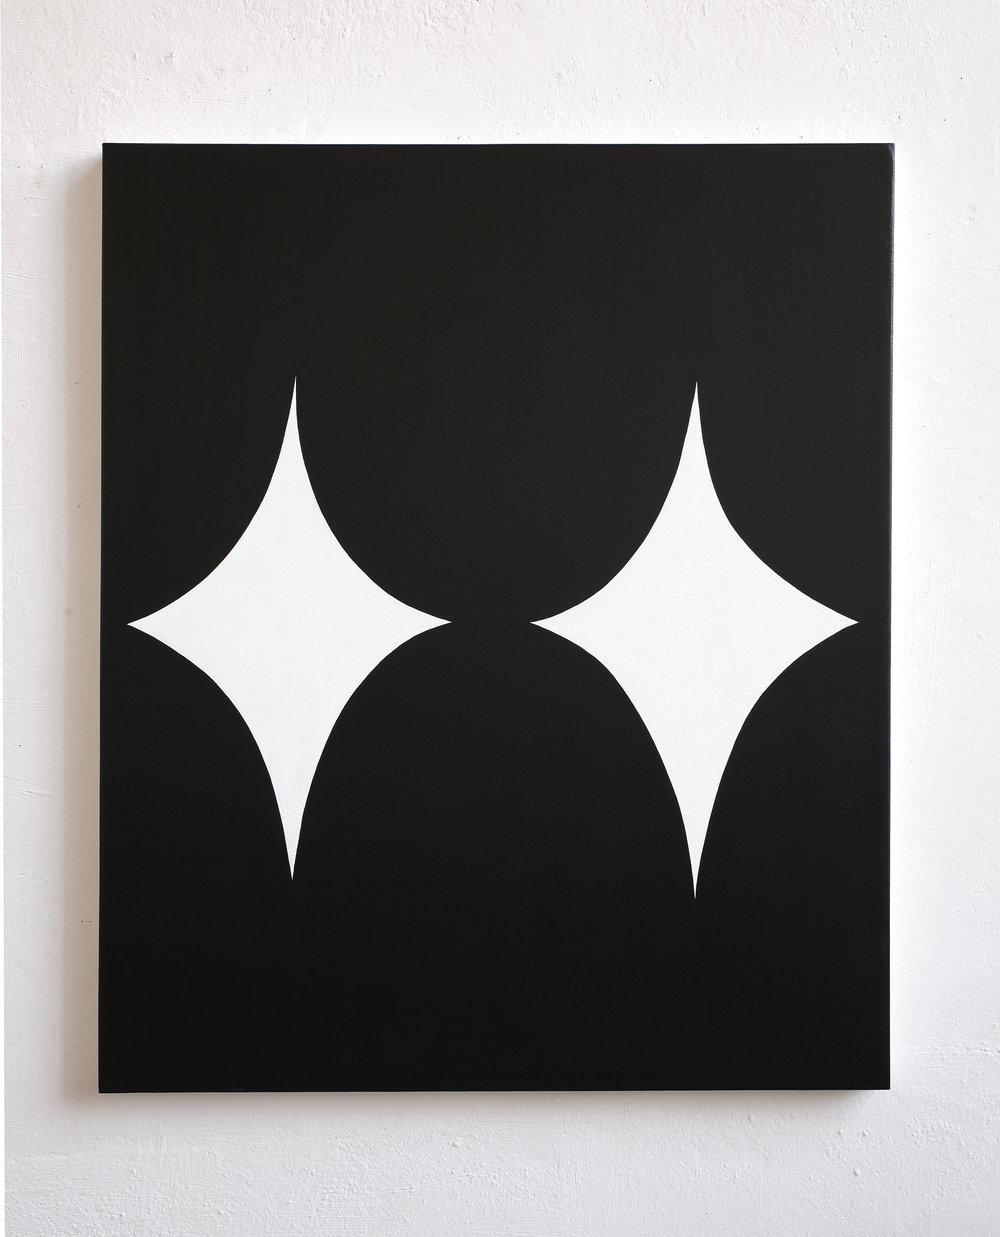 Untitled, 2010, acrylic on canvas, 100 x 120 cm